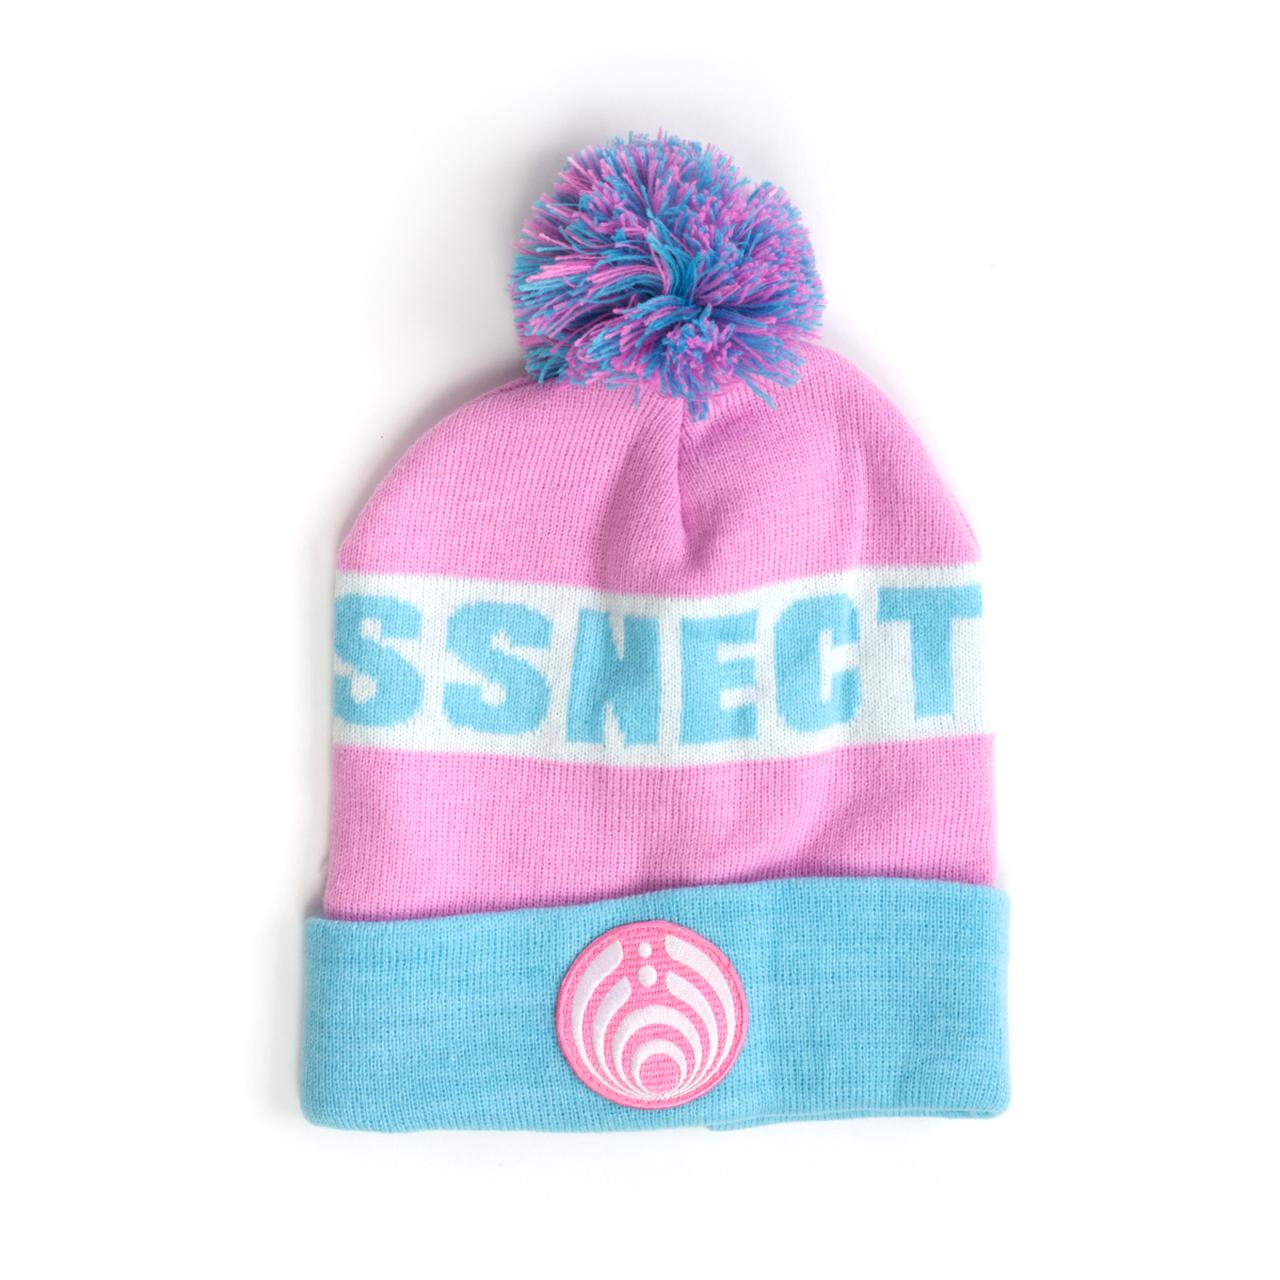 Bassnectar Pink and Blue Custom Patch Knit Beanie 7a73a6af271